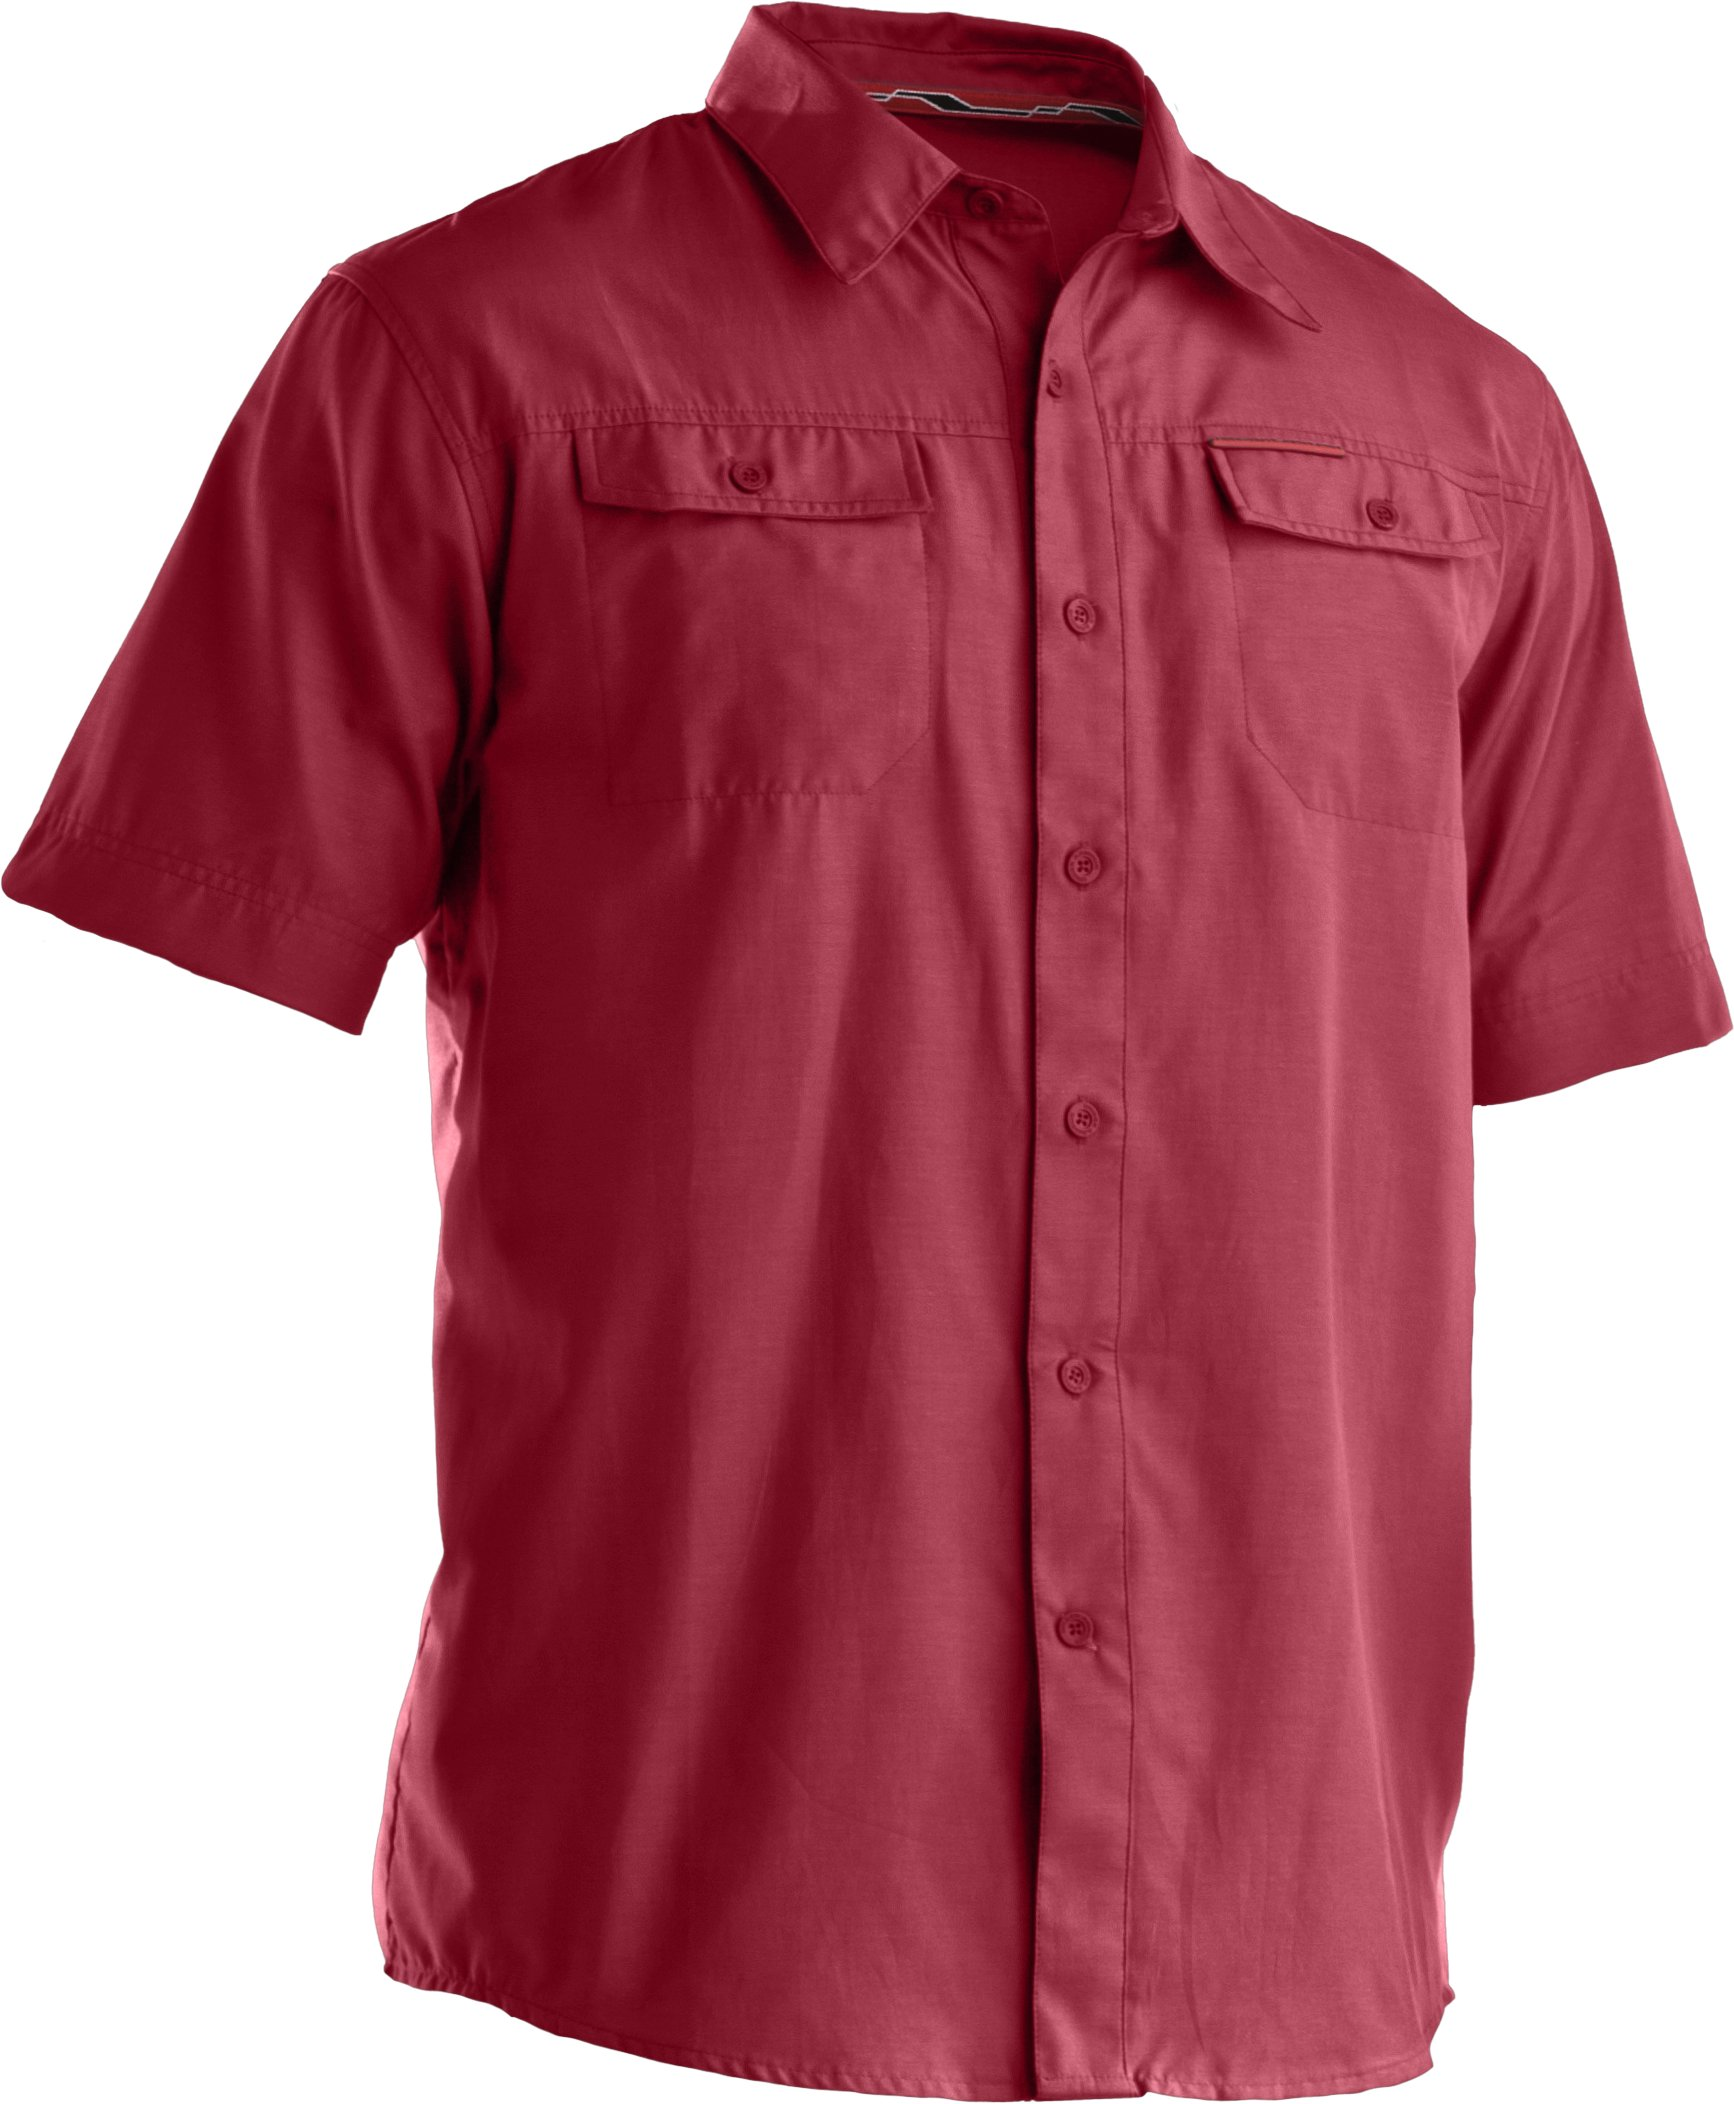 Men's Bocca Solid Short Sleeve Shirt, Crimson